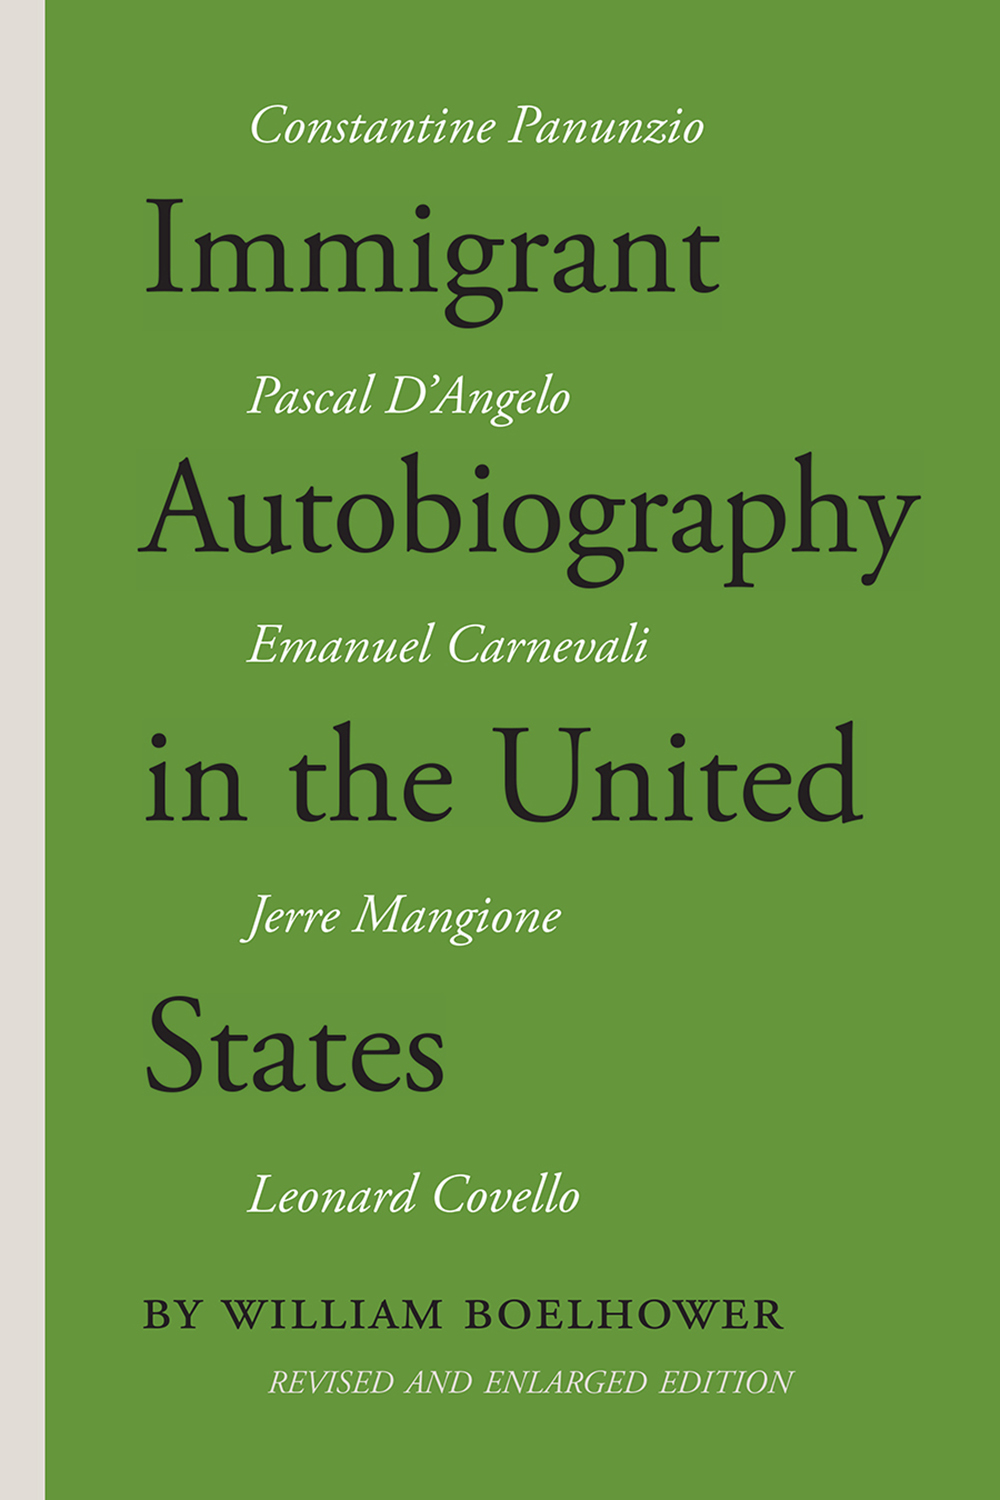 Immigrant Autobiography in the United States: Five Versions of the Italian American Experience